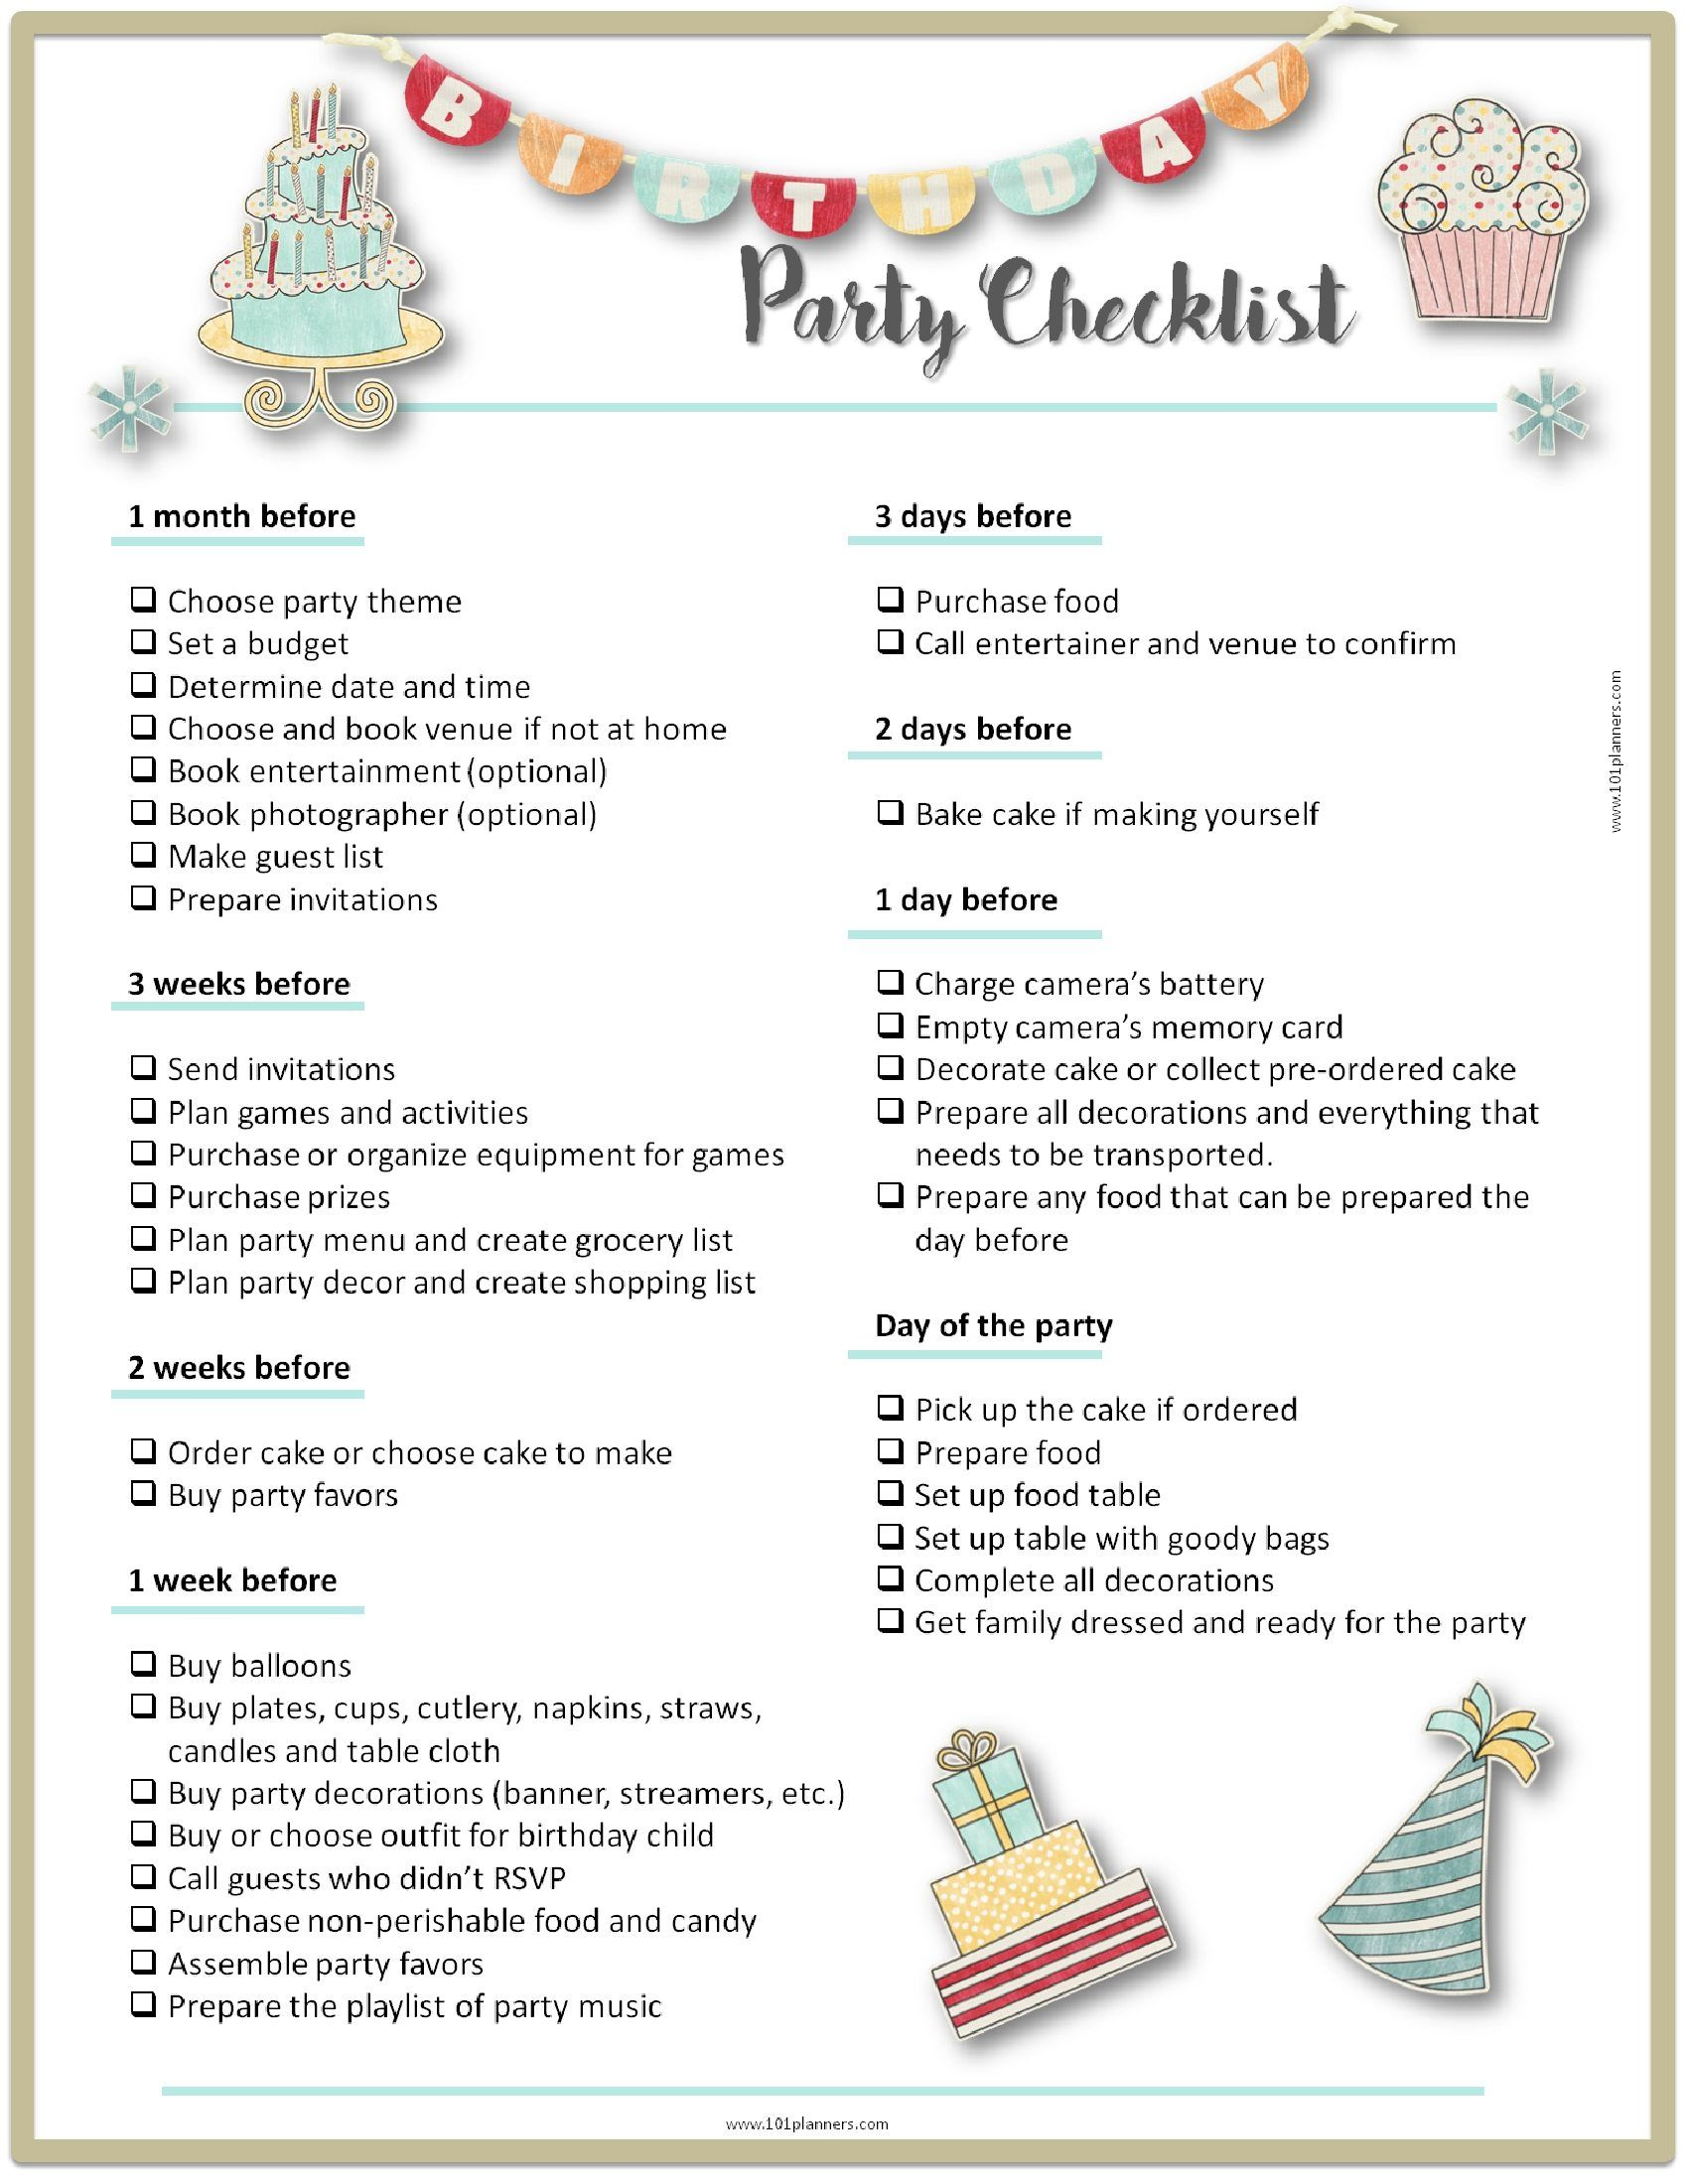 Party Planning Checklist Birthday Party Checklist Party